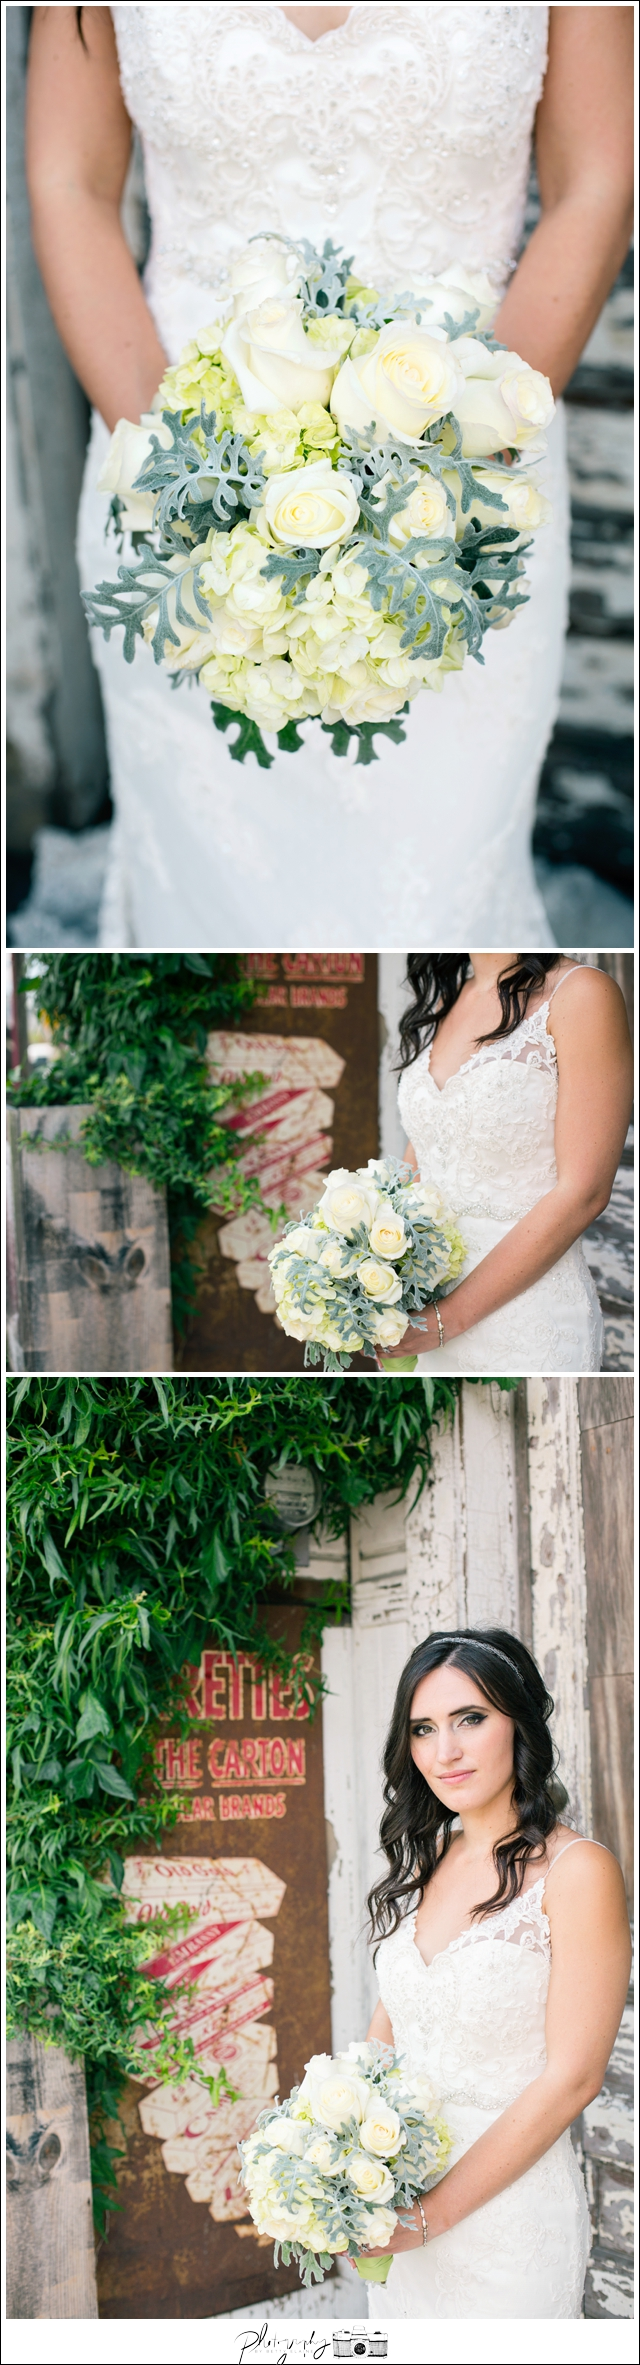 13-Bridal-Portraits-Wedding-Bouquet-Snohomish-Historic-Downtown-Wedding-Photography-by-Betty-Elaine-Seattle-Wedding-Photographer